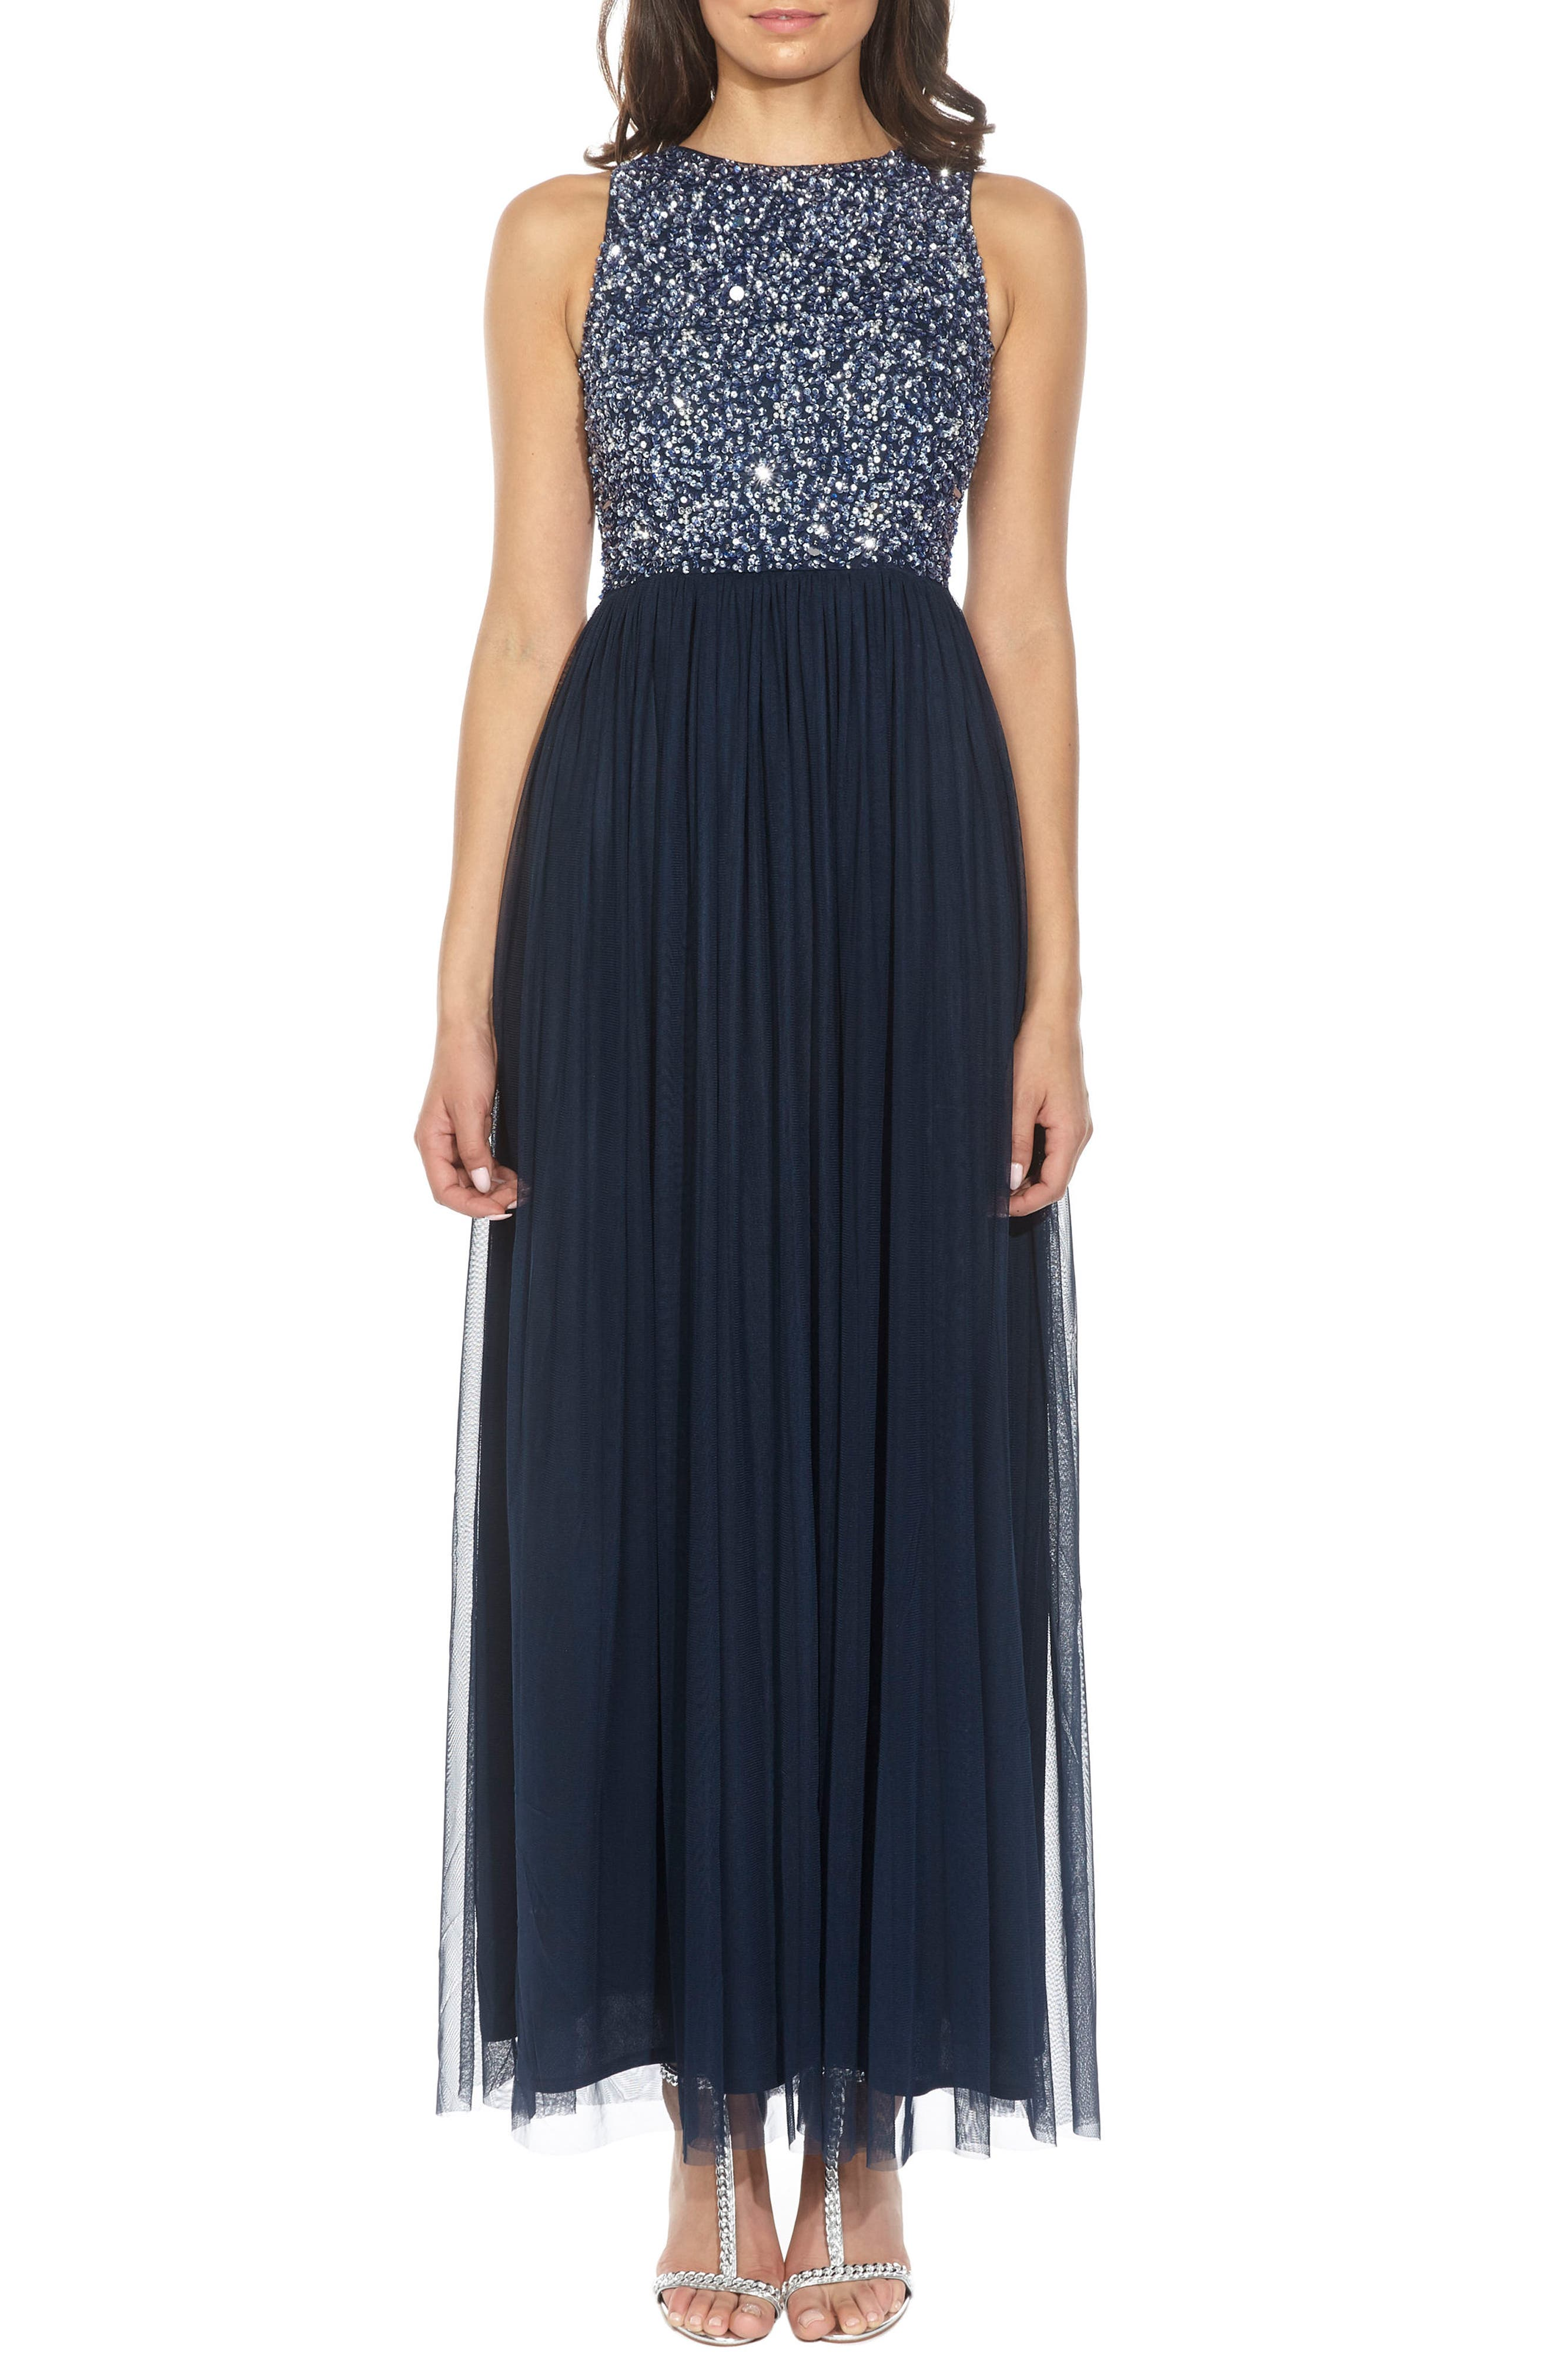 Picasso Embellished Bodice Maxi Dress,                             Main thumbnail 1, color,                             Navy